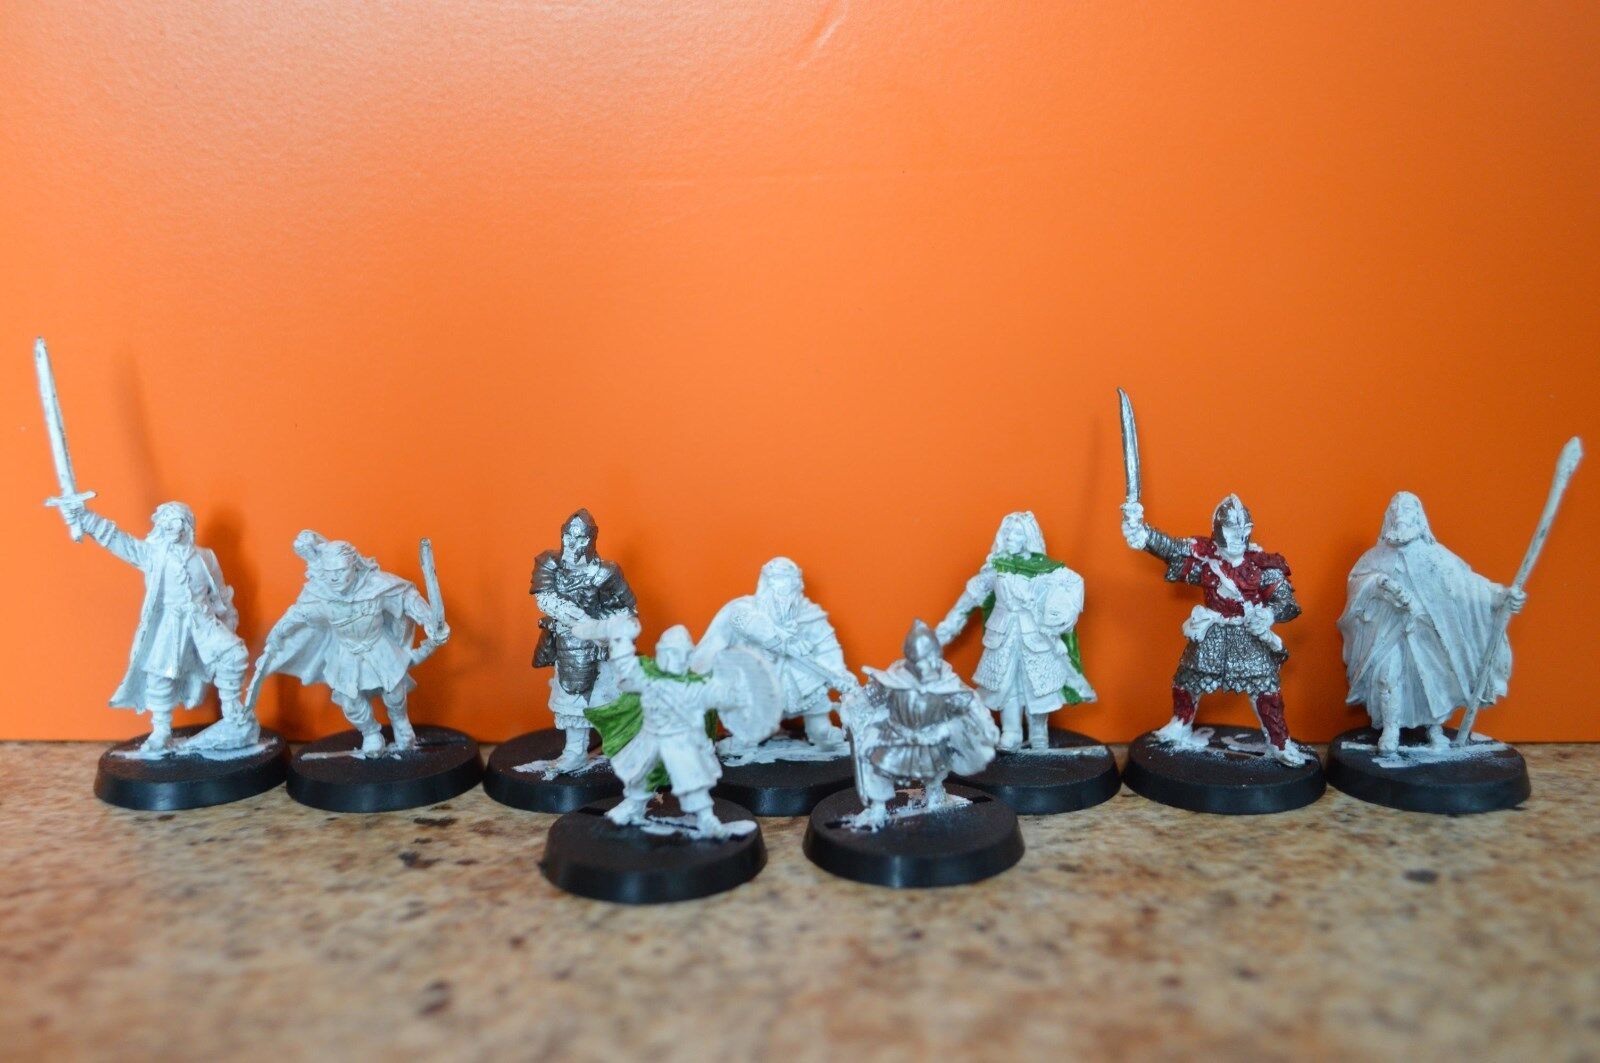 Games Workshop LOTR Metal Figures Heroes Of The West 9 Figures - Nov 2003